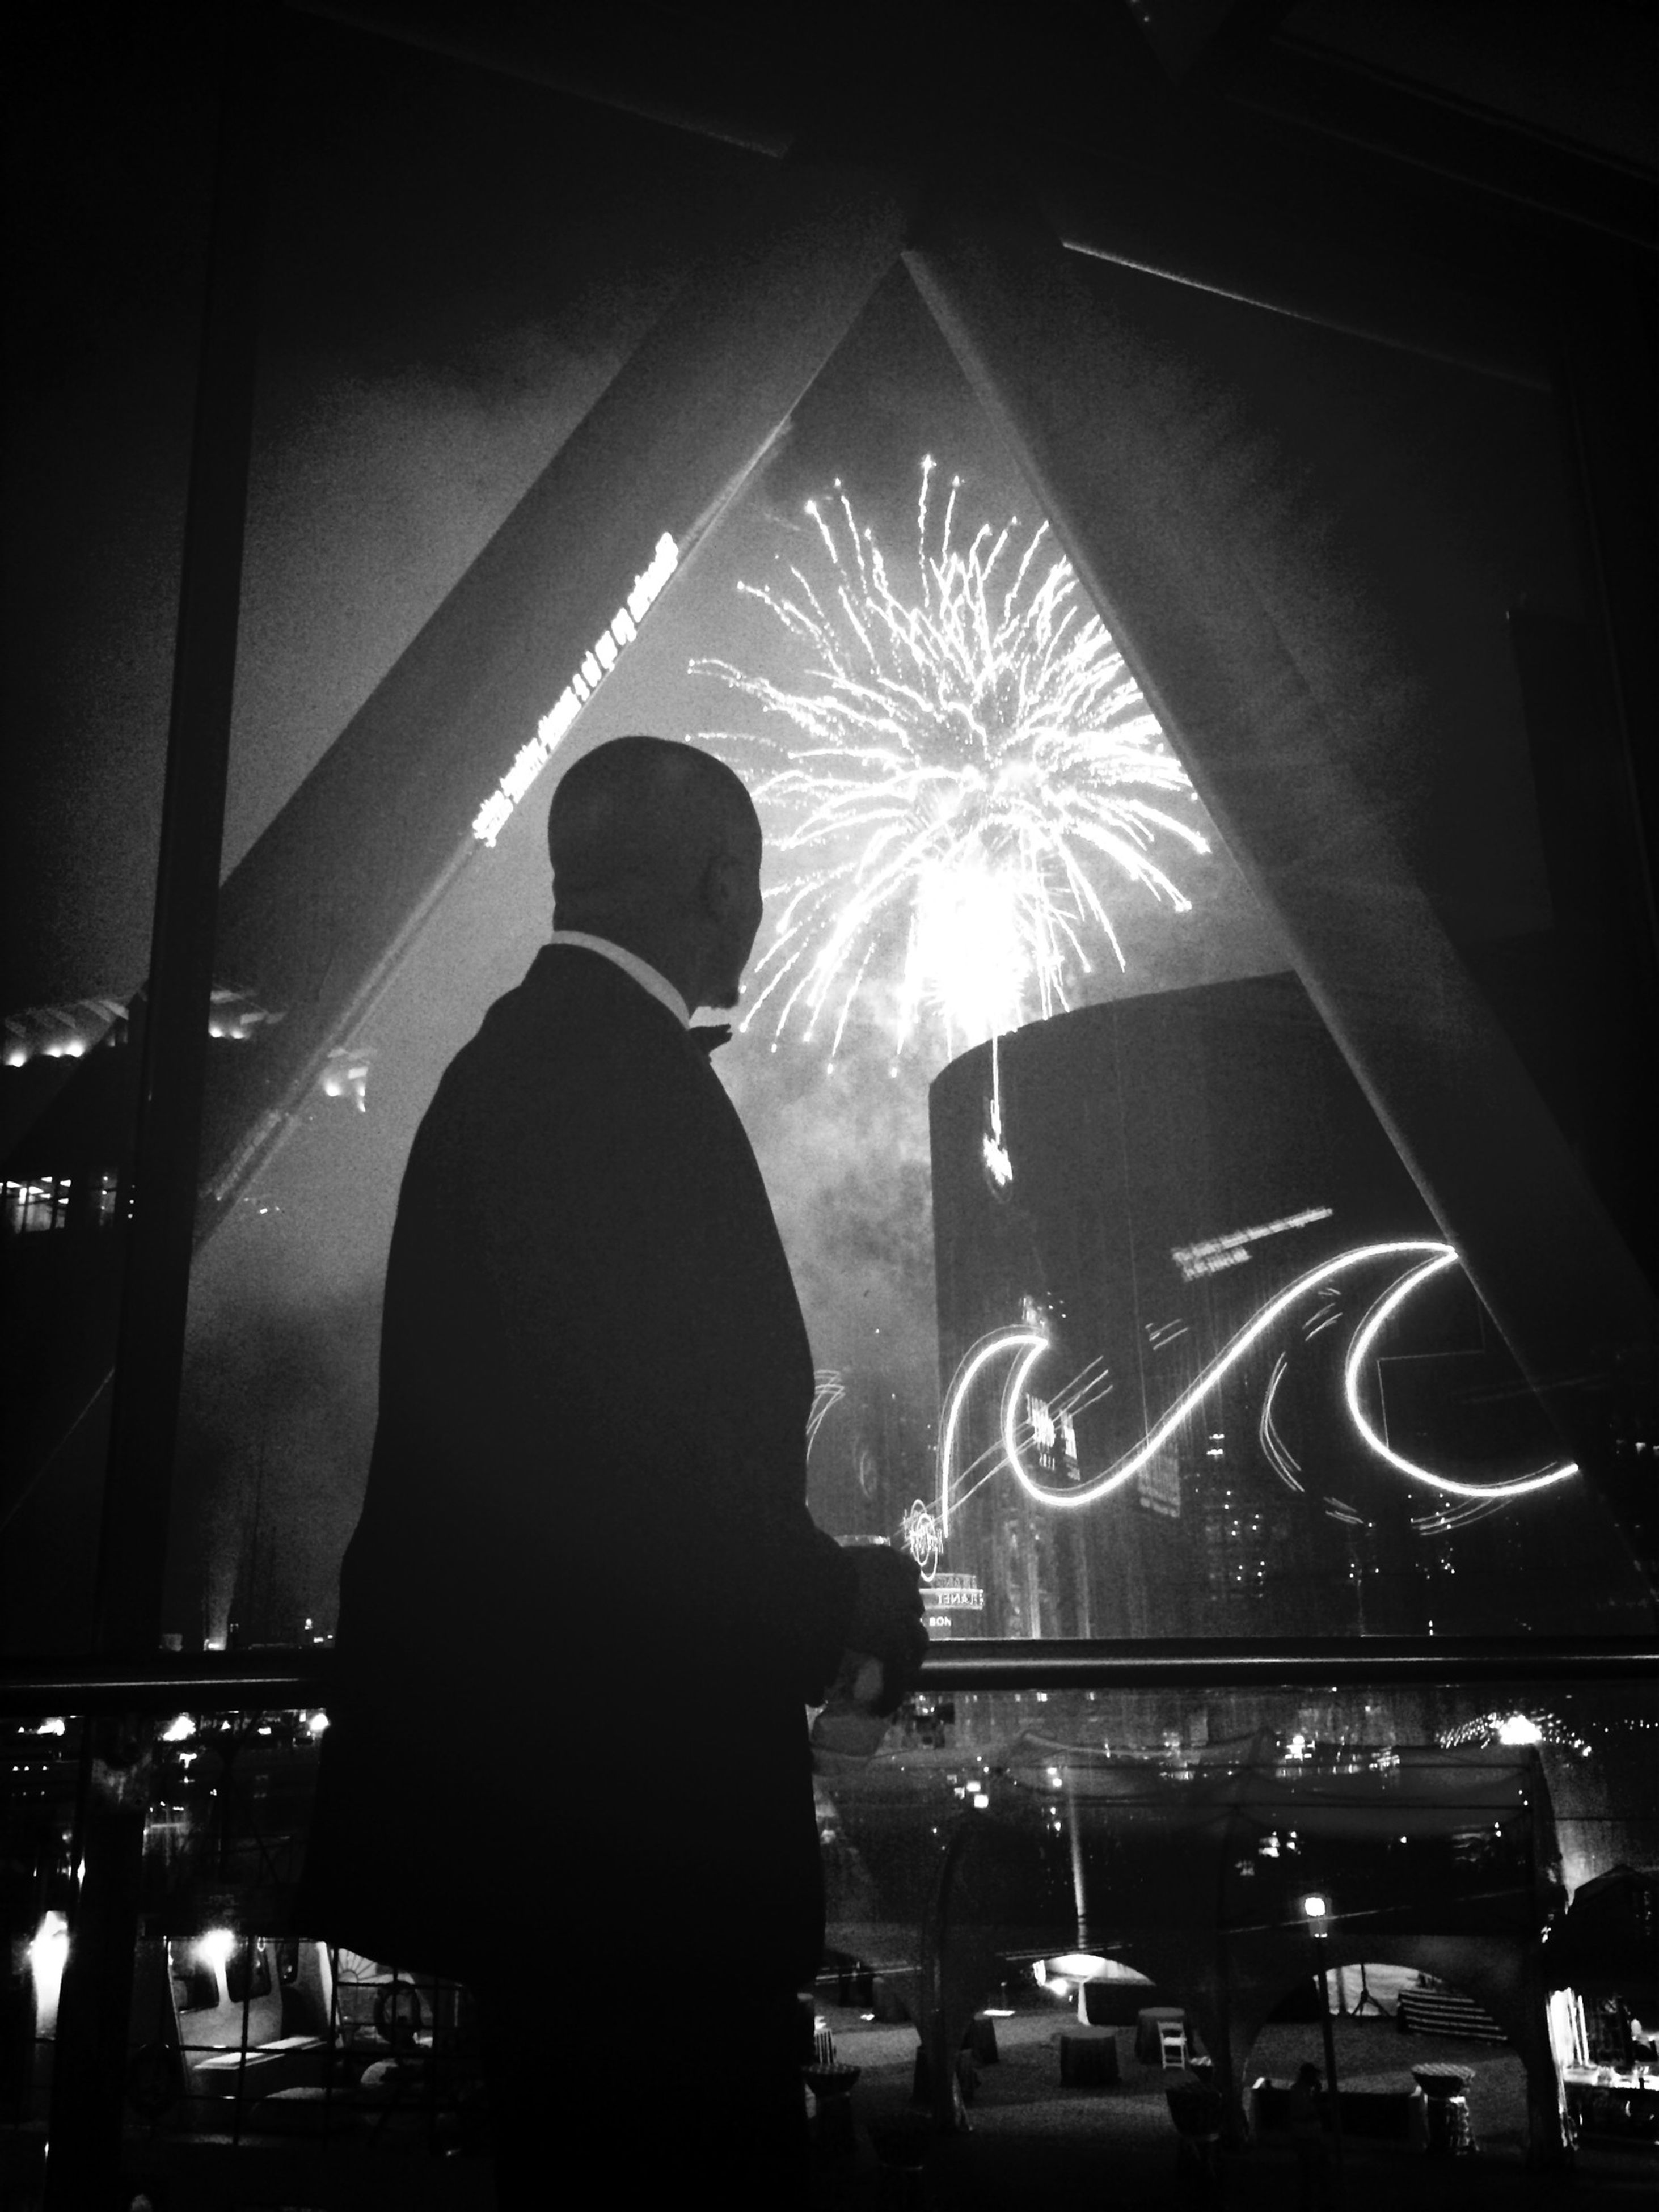 illuminated, night, men, arts culture and entertainment, lifestyles, leisure activity, nightlife, music, event, indoors, rear view, person, silhouette, performance, standing, celebration, stage - performance space, light - natural phenomenon